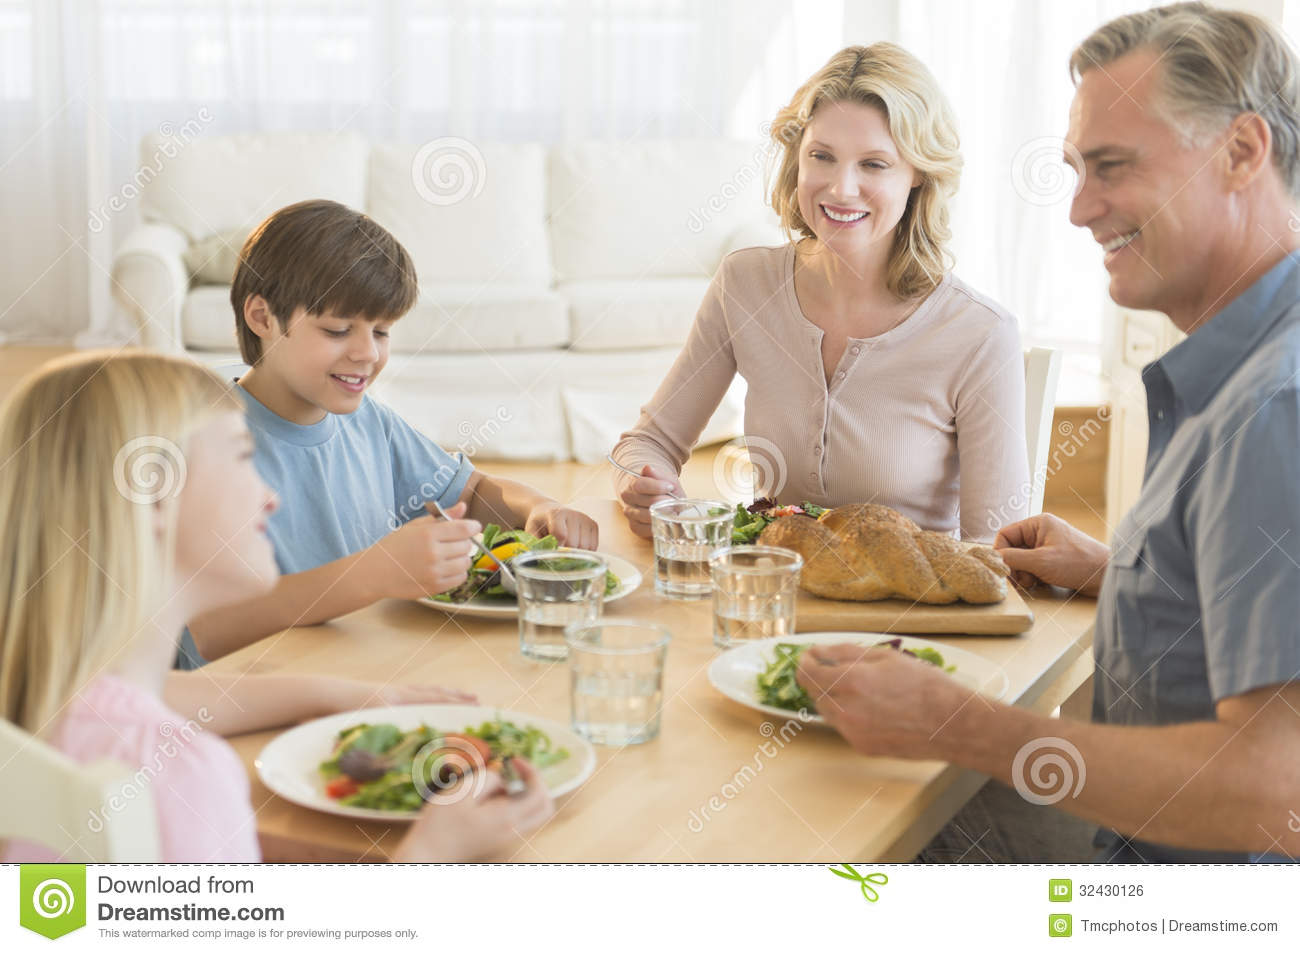 Dinner table with food - Dining Food Table